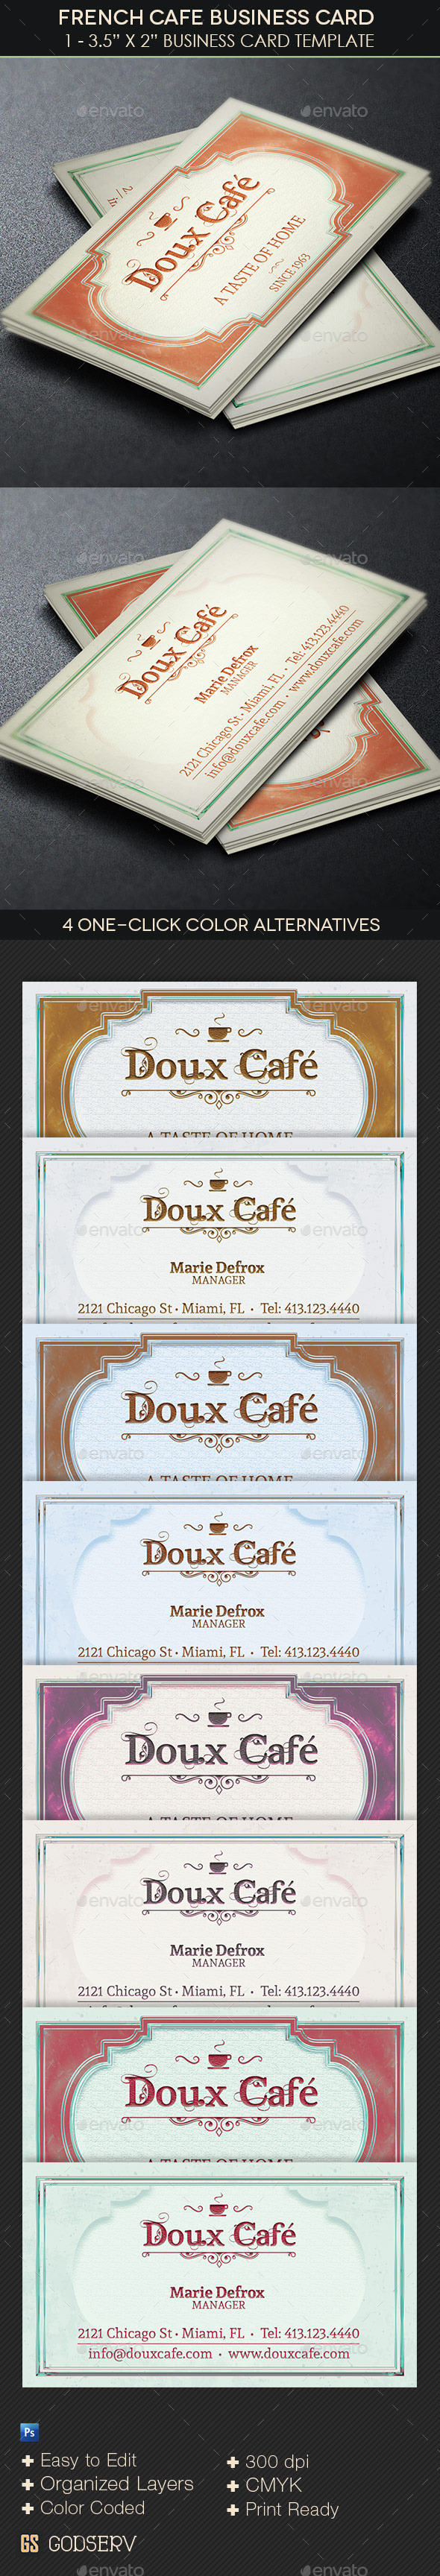 French Cafe Business Card Template by Godserv   GraphicRiver